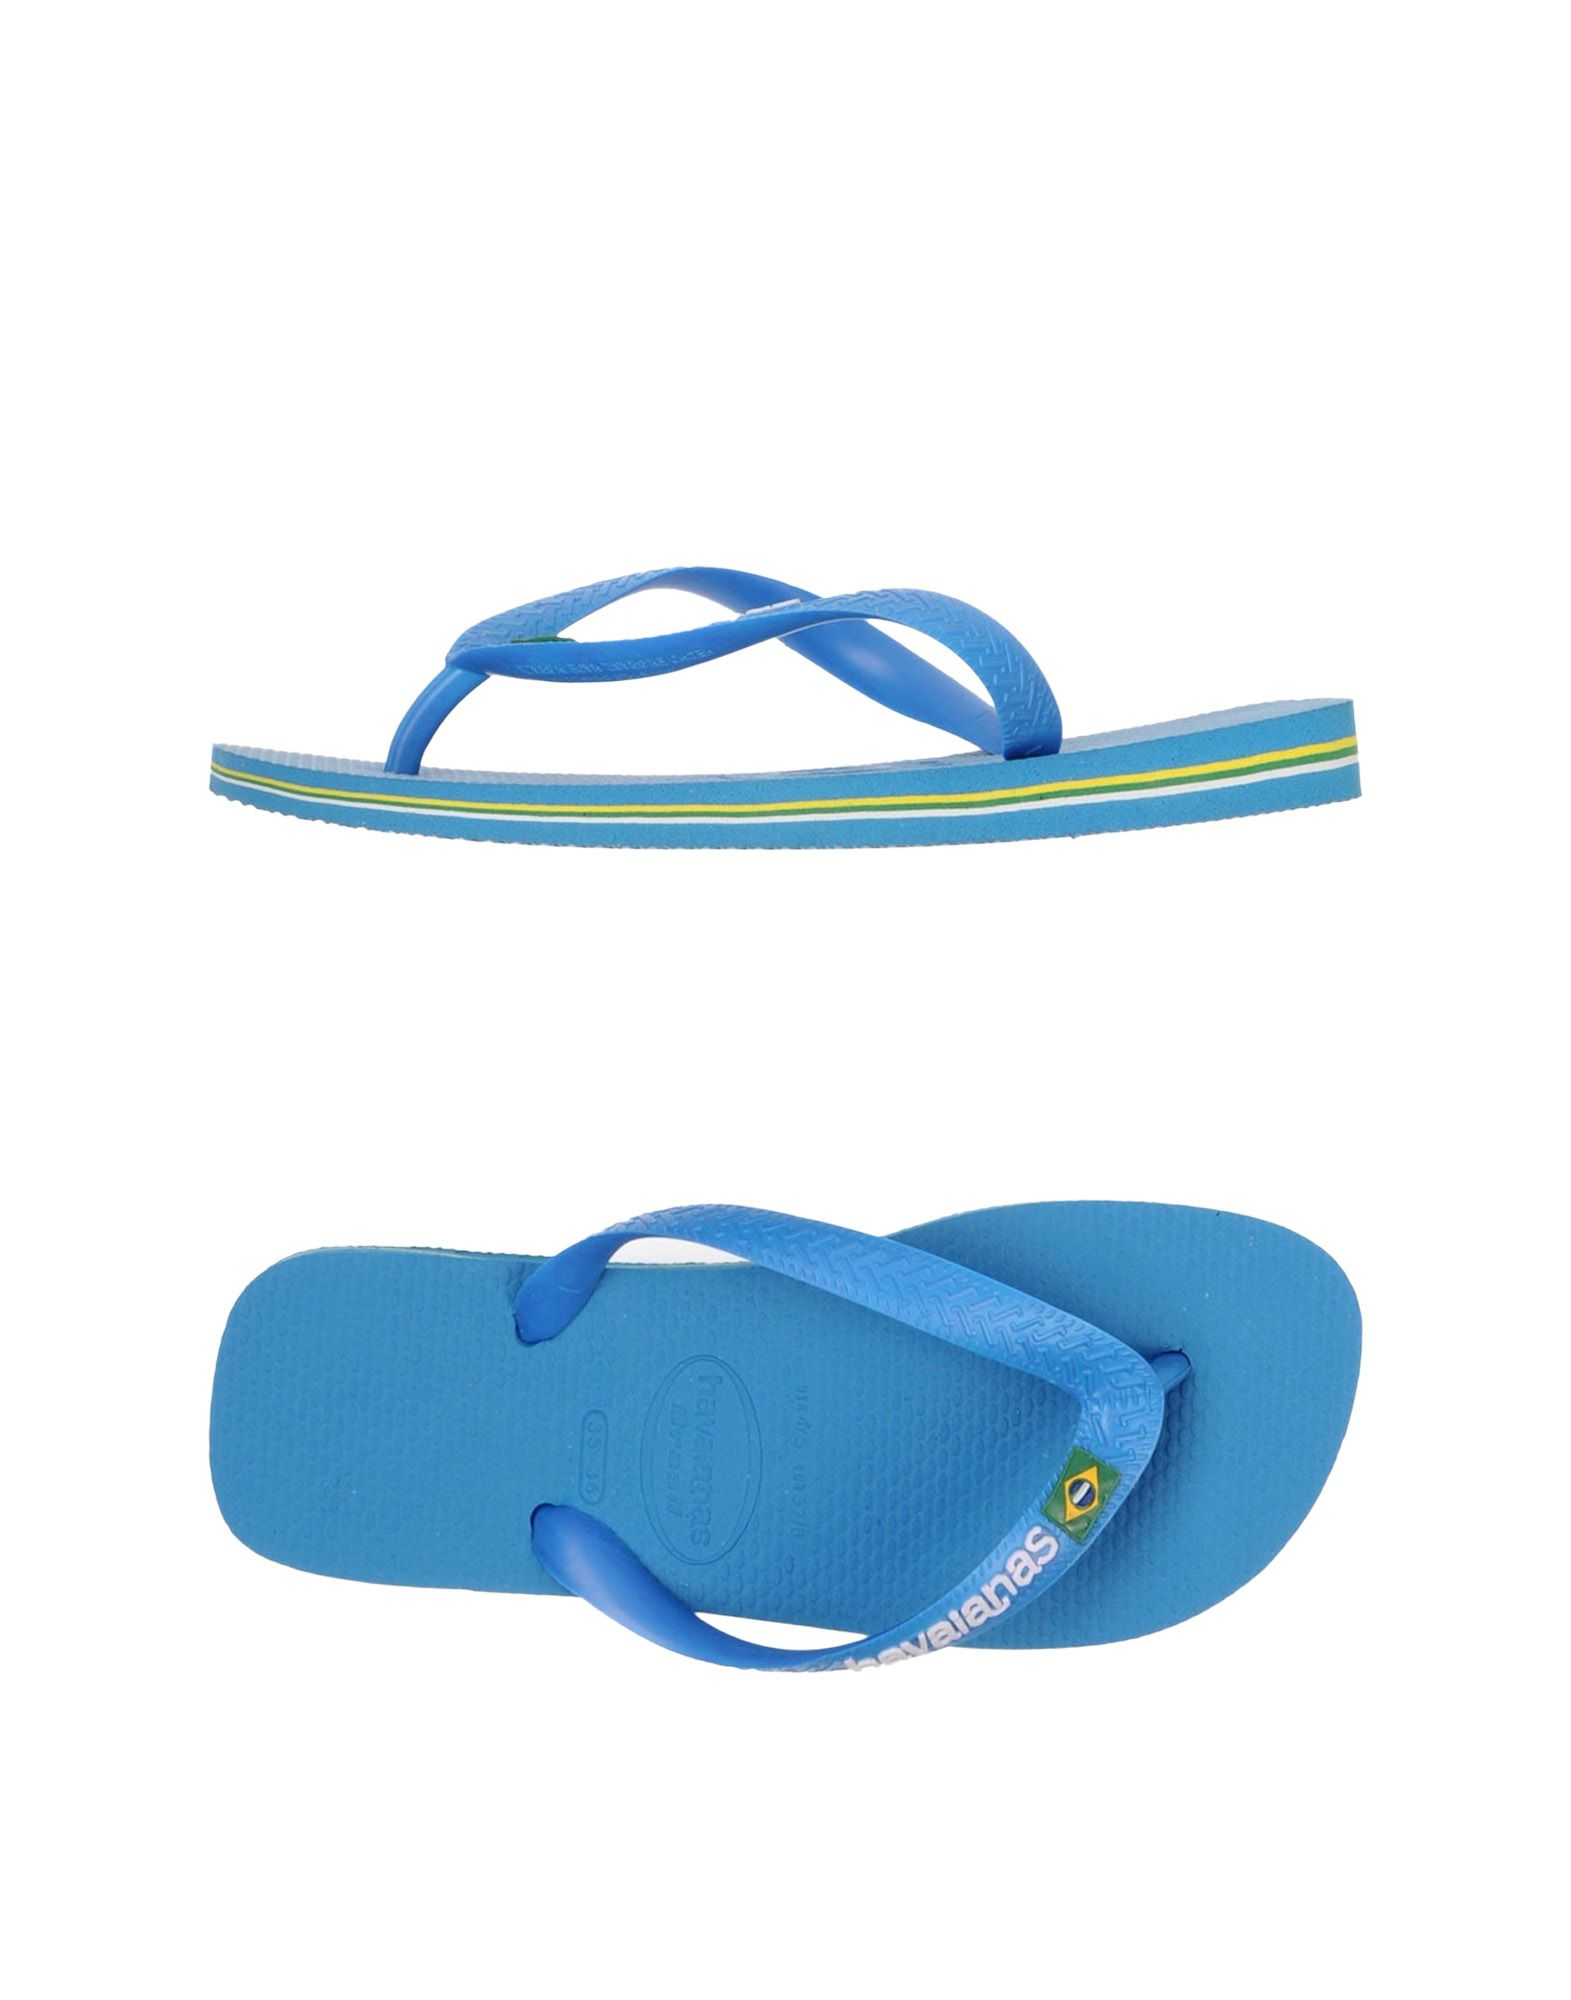 3fce2874a Havaianas Thong Sandal in Blue - Lyst